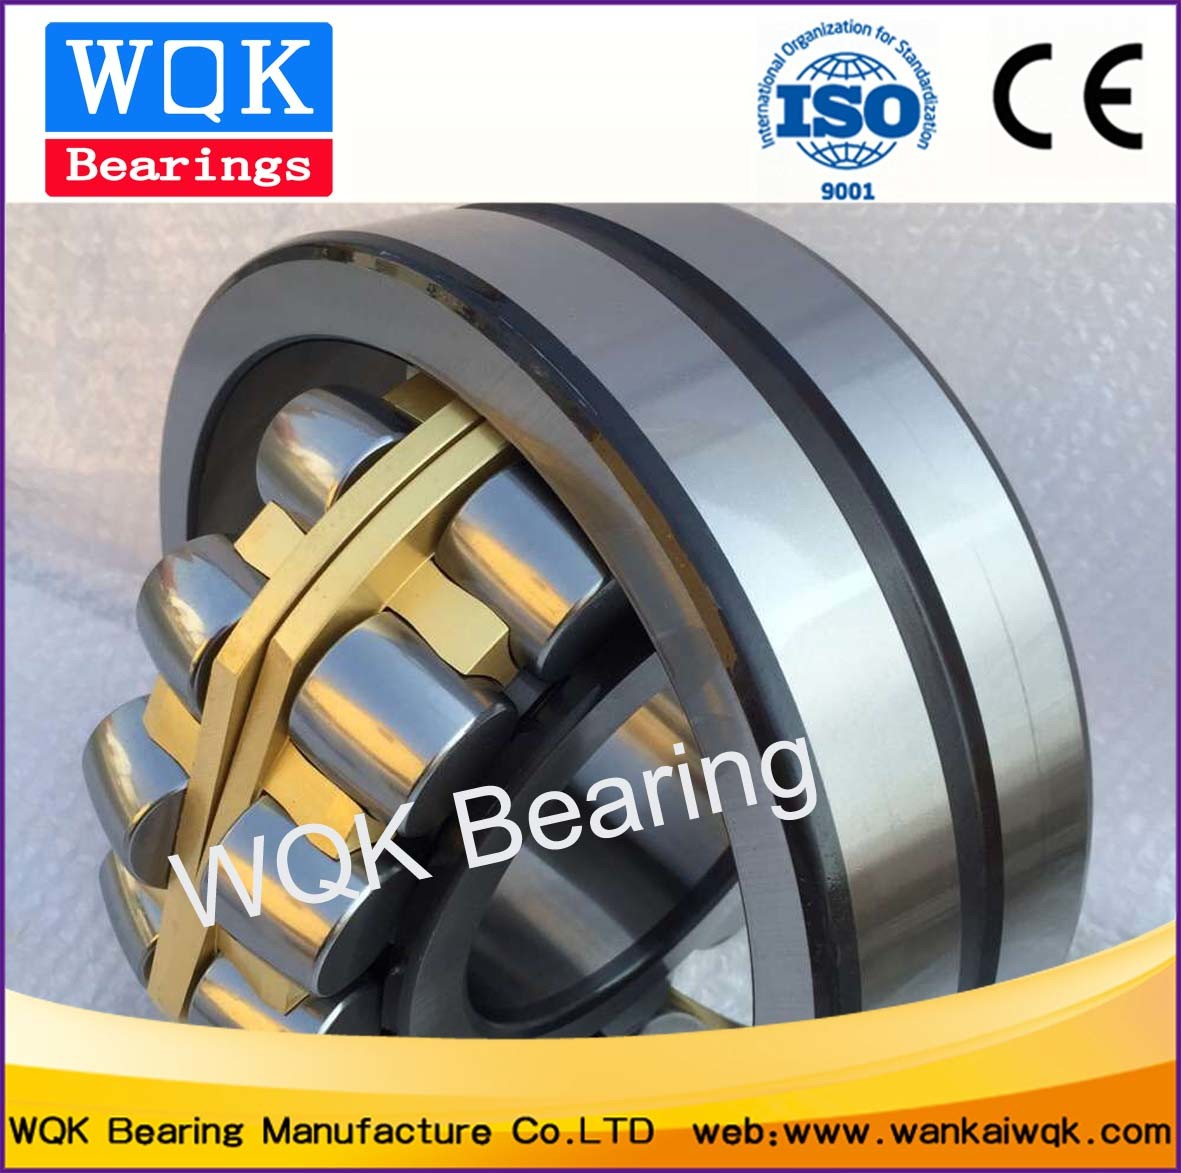 Wqk Bearing 22322 MB Va405 Spherical Roller Bearing Use in Vibration Screen